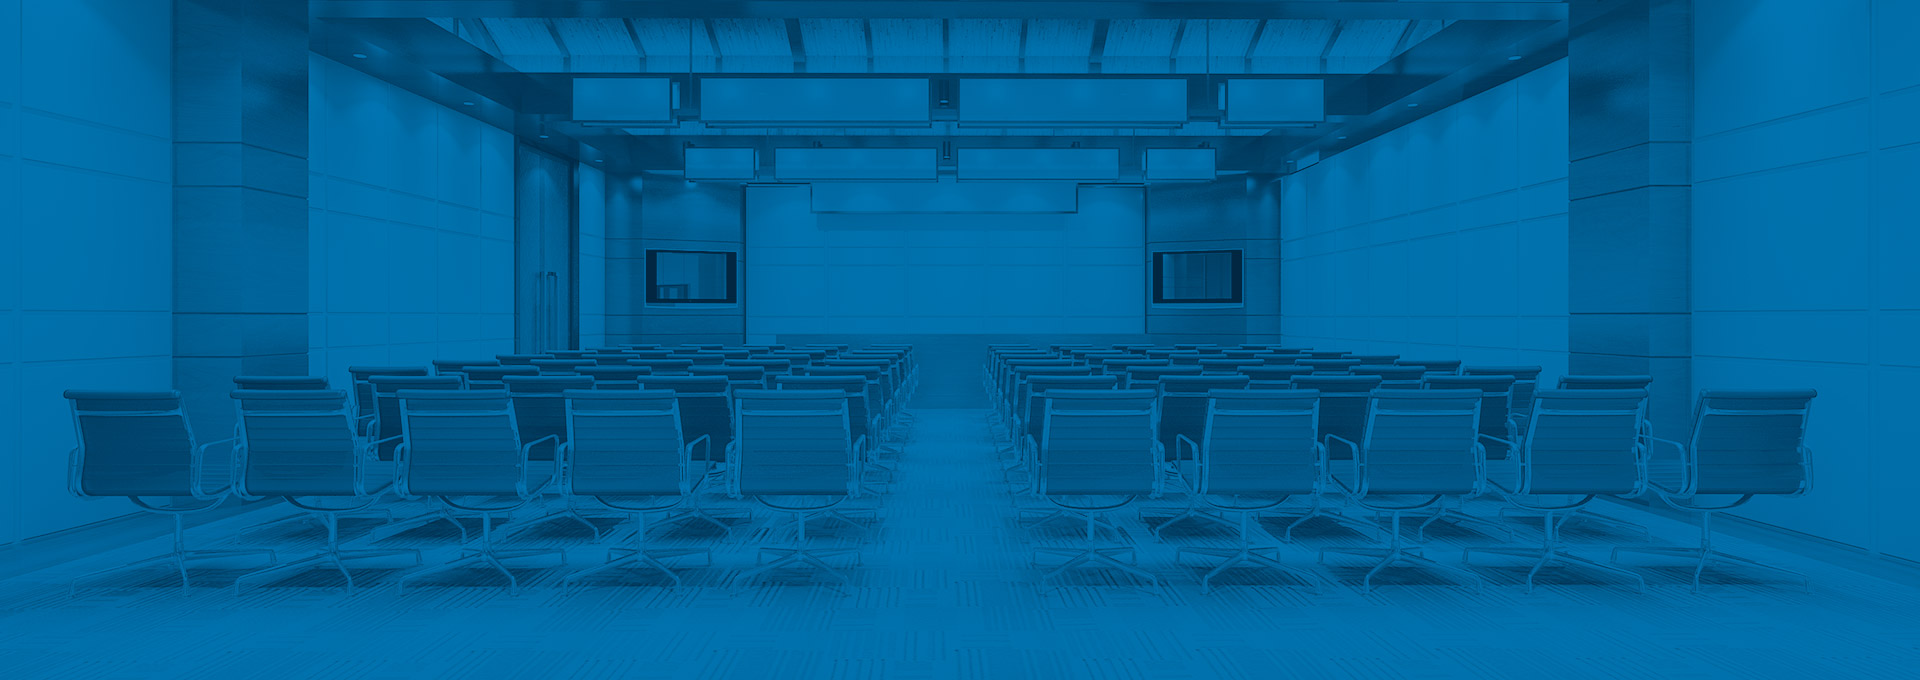 FNTECH: Leading Sustainable Production of In-Person, Hybrid and Virtual Events